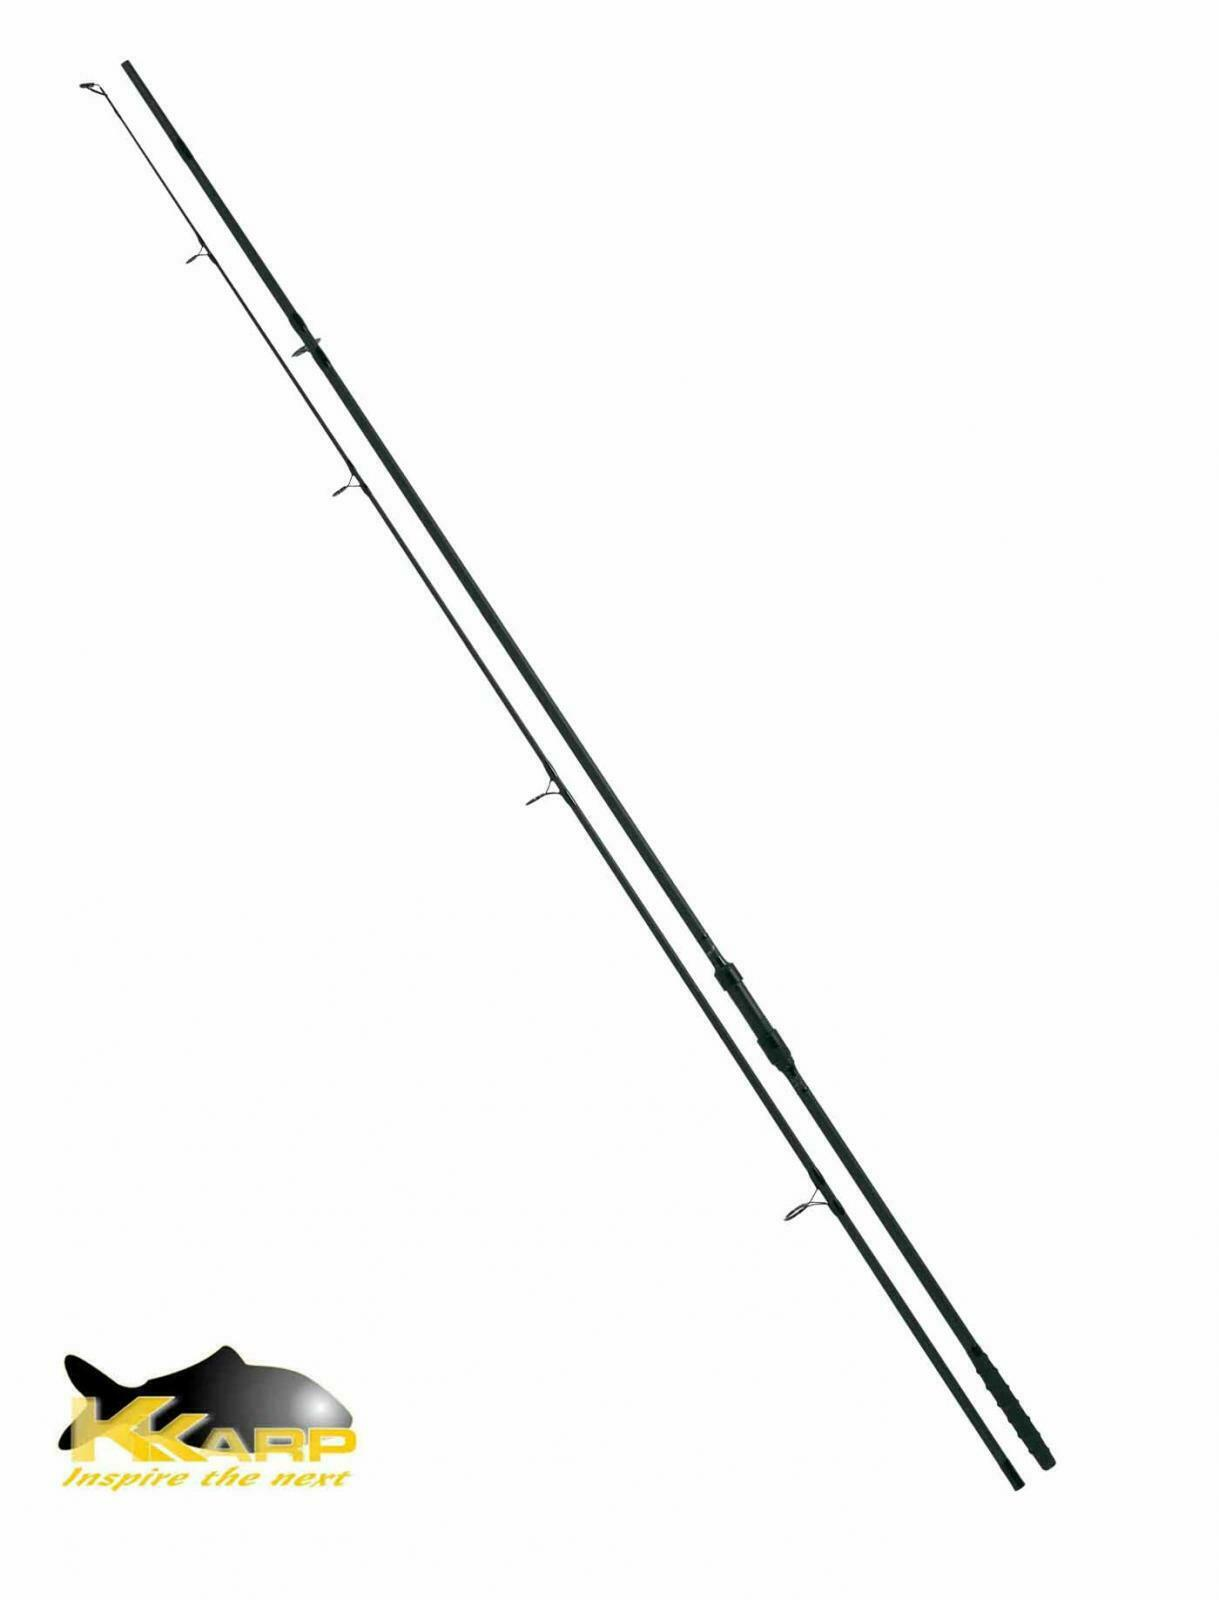 15892360 Canna K-Karp Pesca Cochepfishing Punisher LD 360 cm Cochebonio  FEU